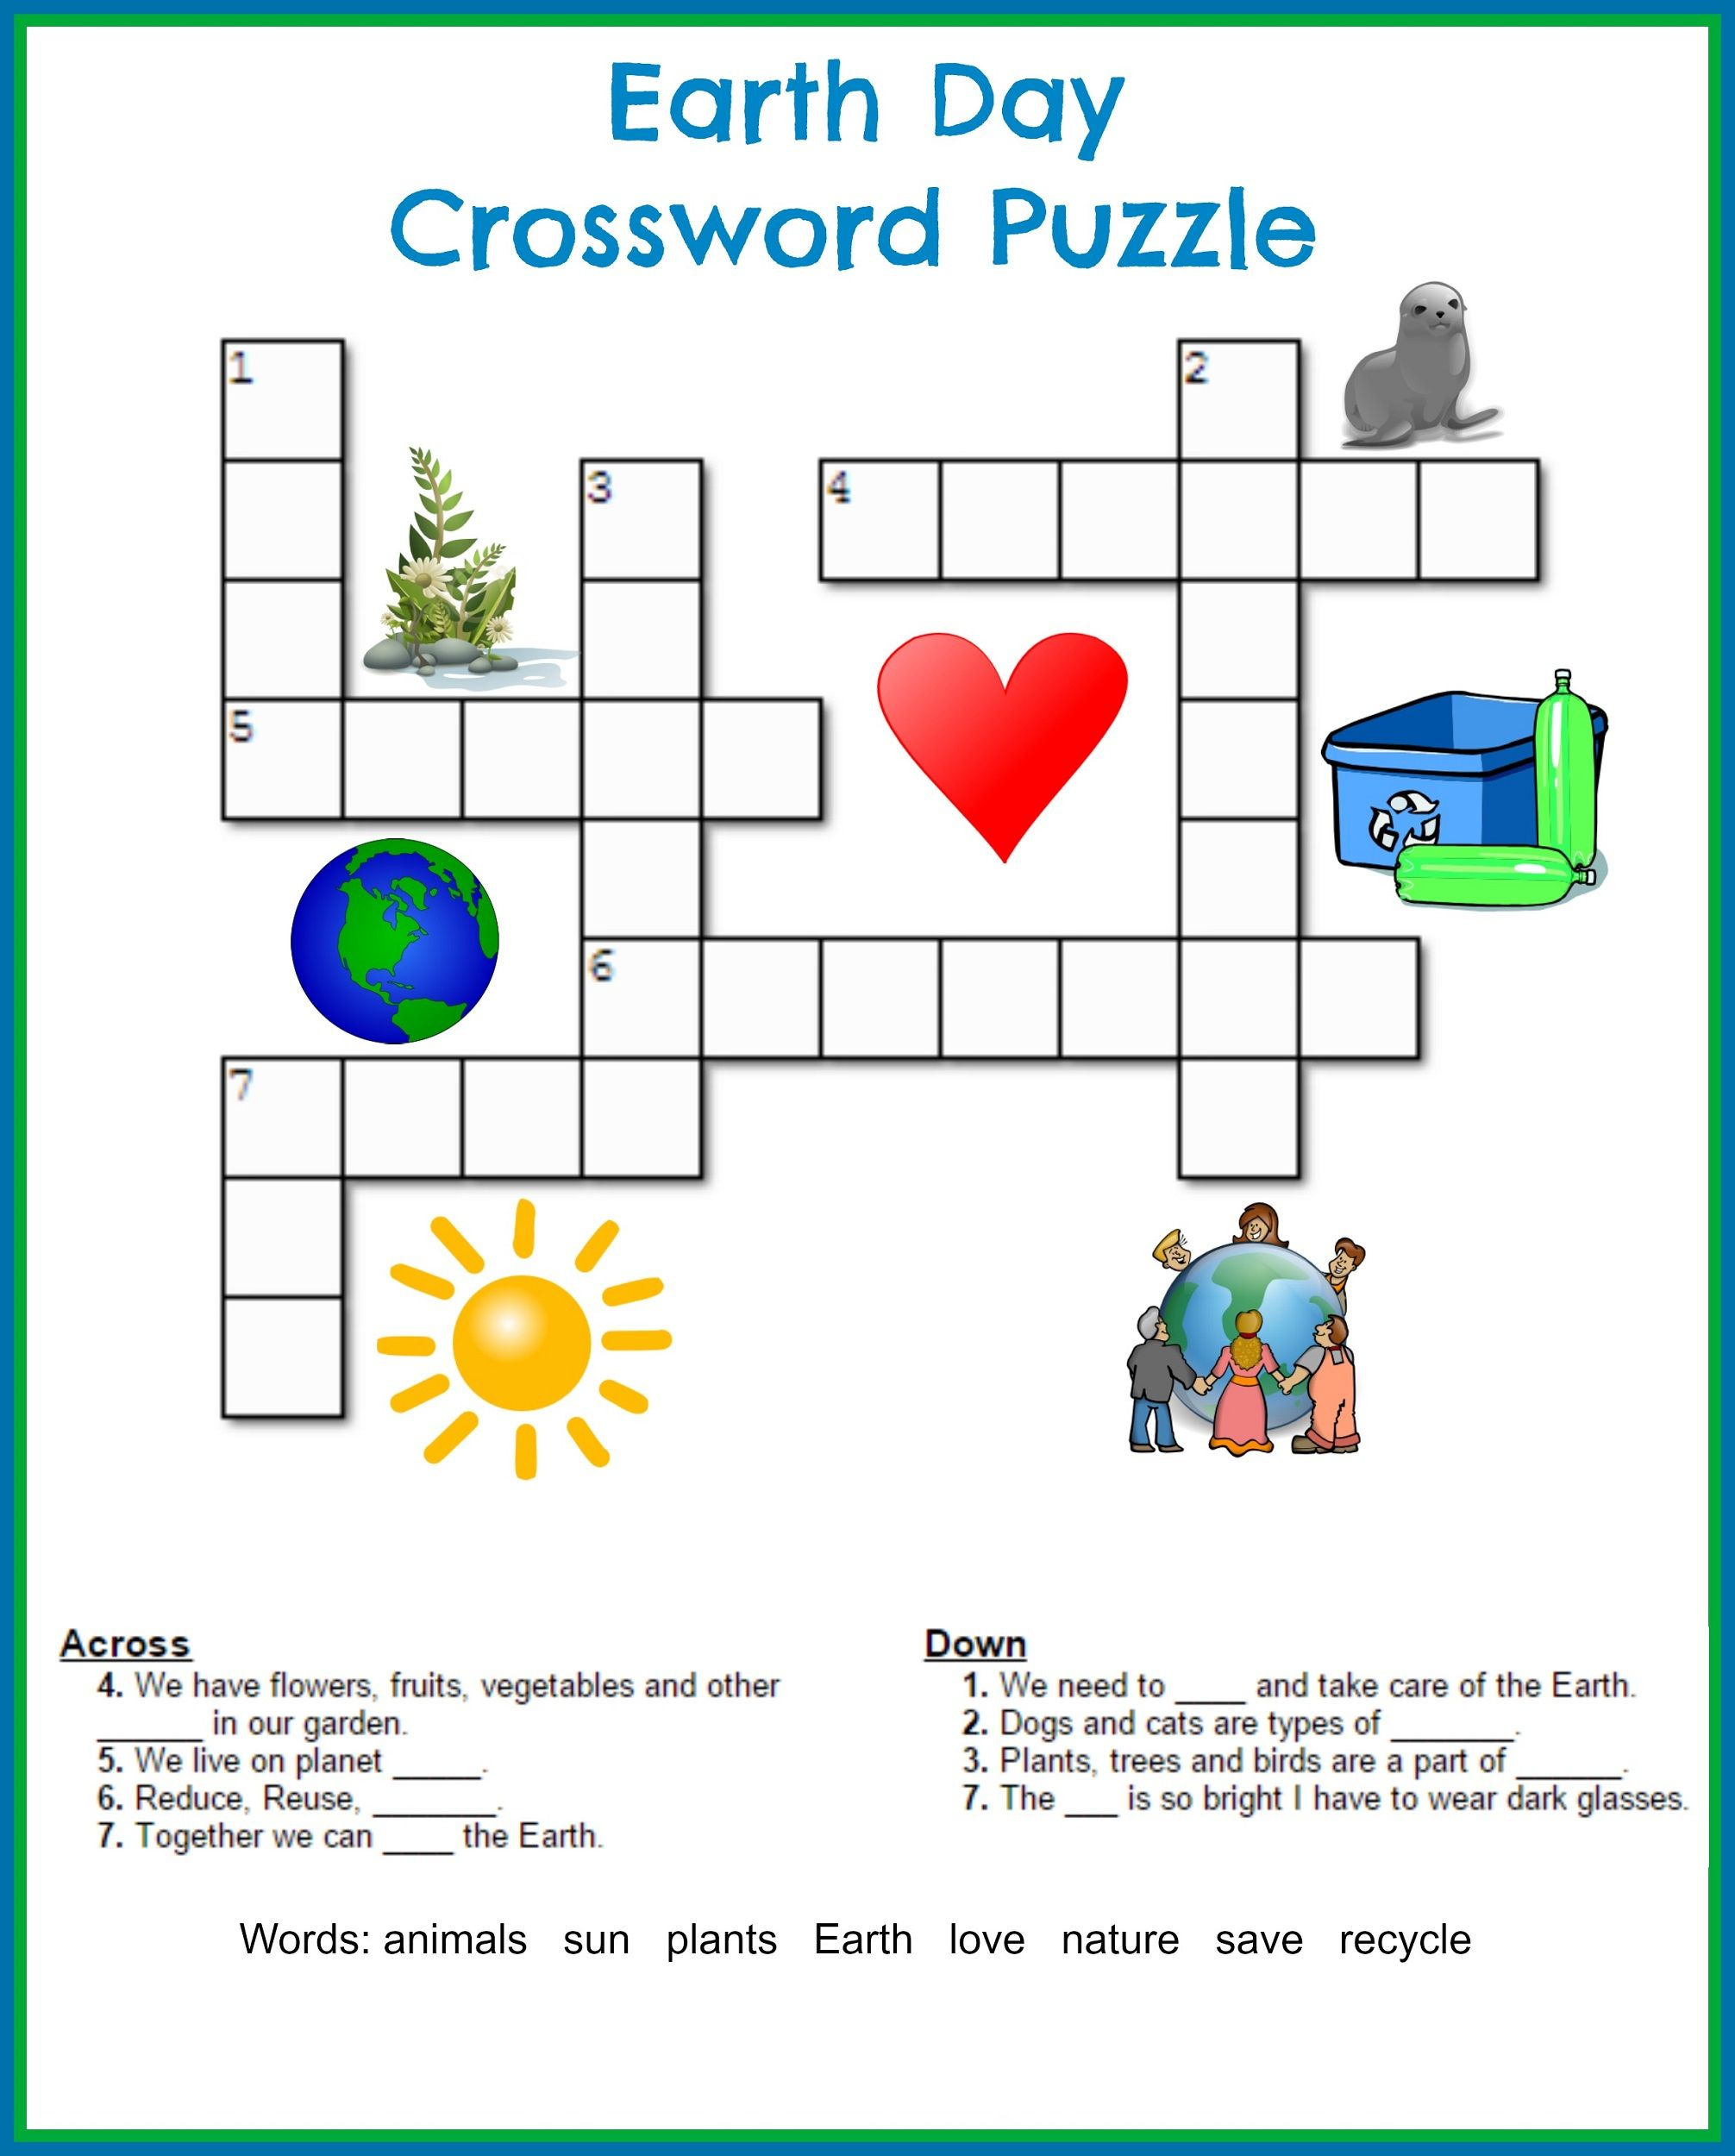 Printable Crossword Puzzles Kids | Crossword Puzzles On Earth - Printable Crossword Puzzles For Grade 1